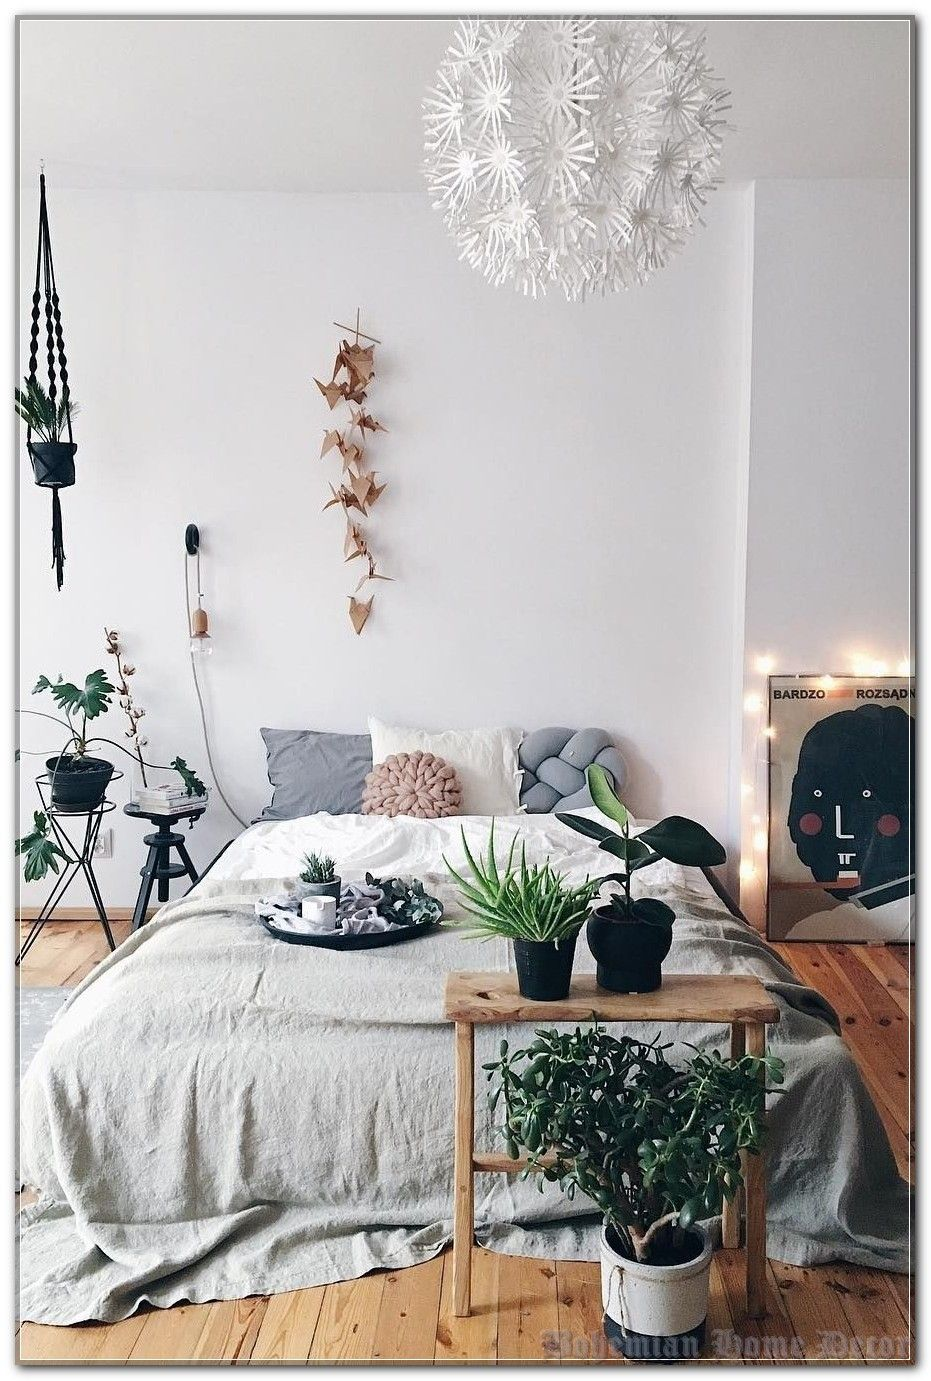 How To Buy (A) Bohemian Home Decor On A Tight Budget